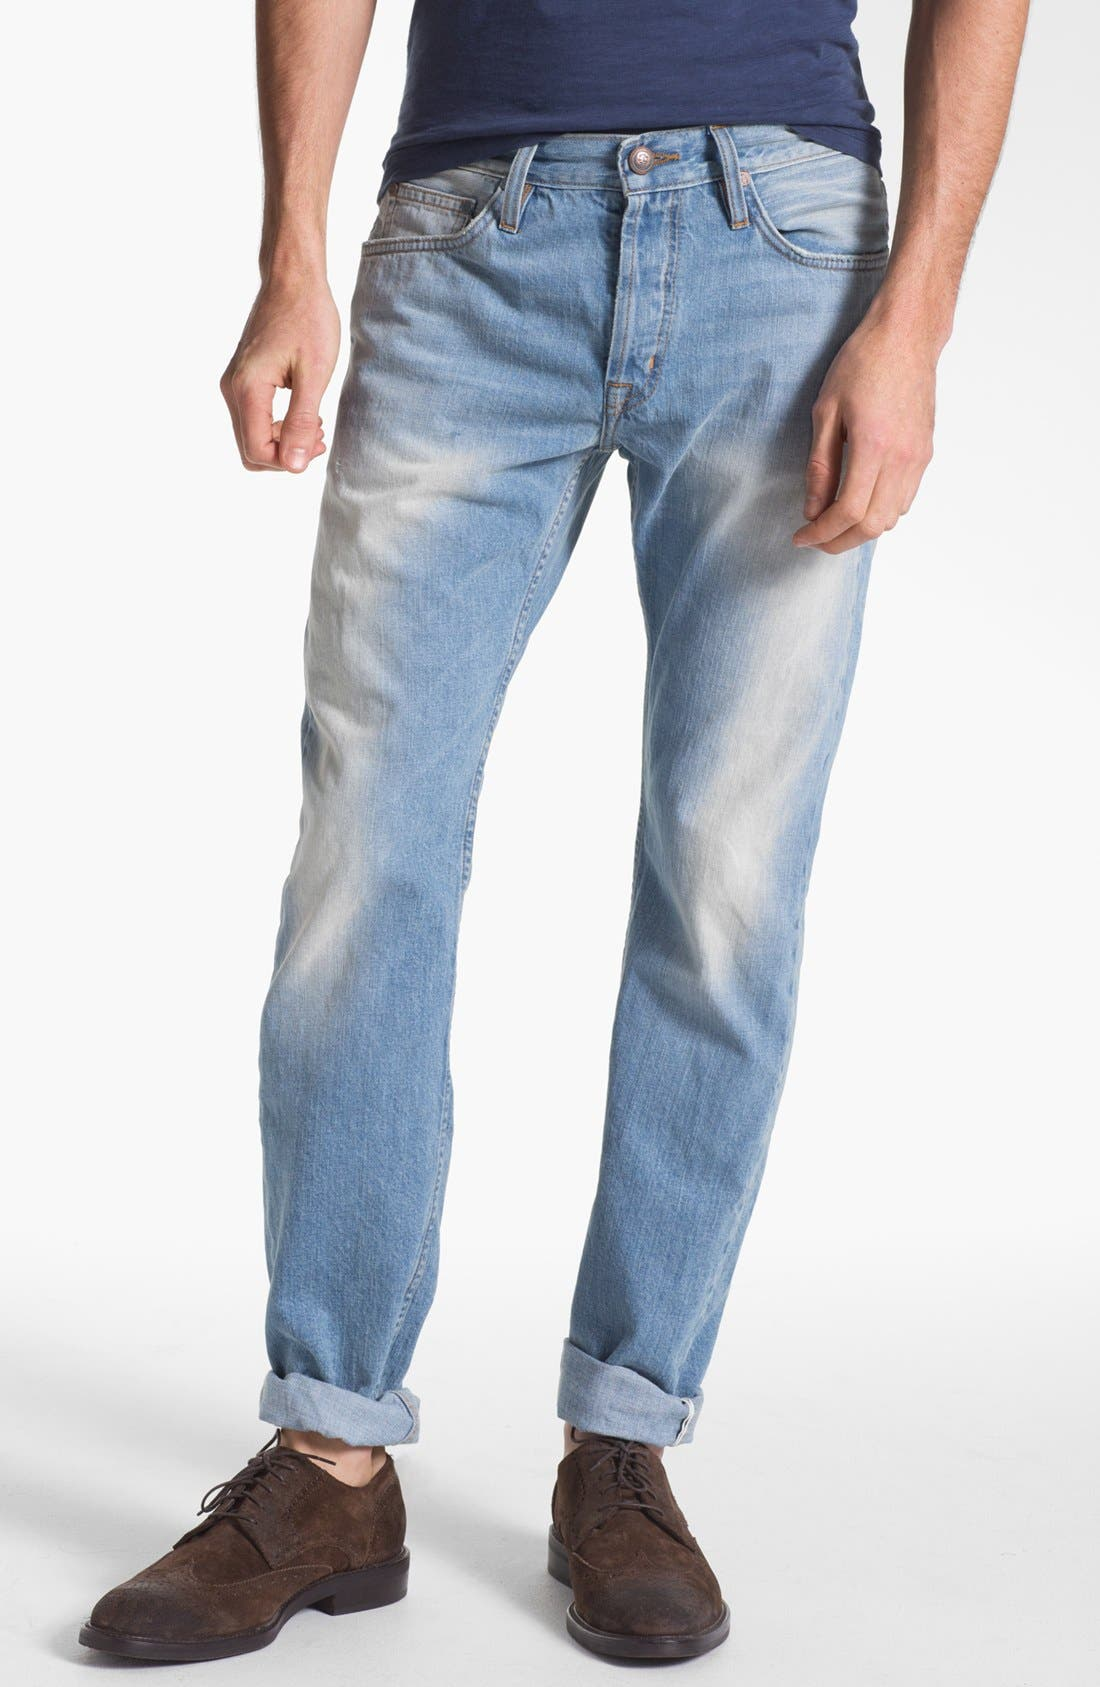 Alternate Image 1 Selected - Asbury Park '1874 Monte Carlo' Straight Leg Selvedge Jeans (Paramount)